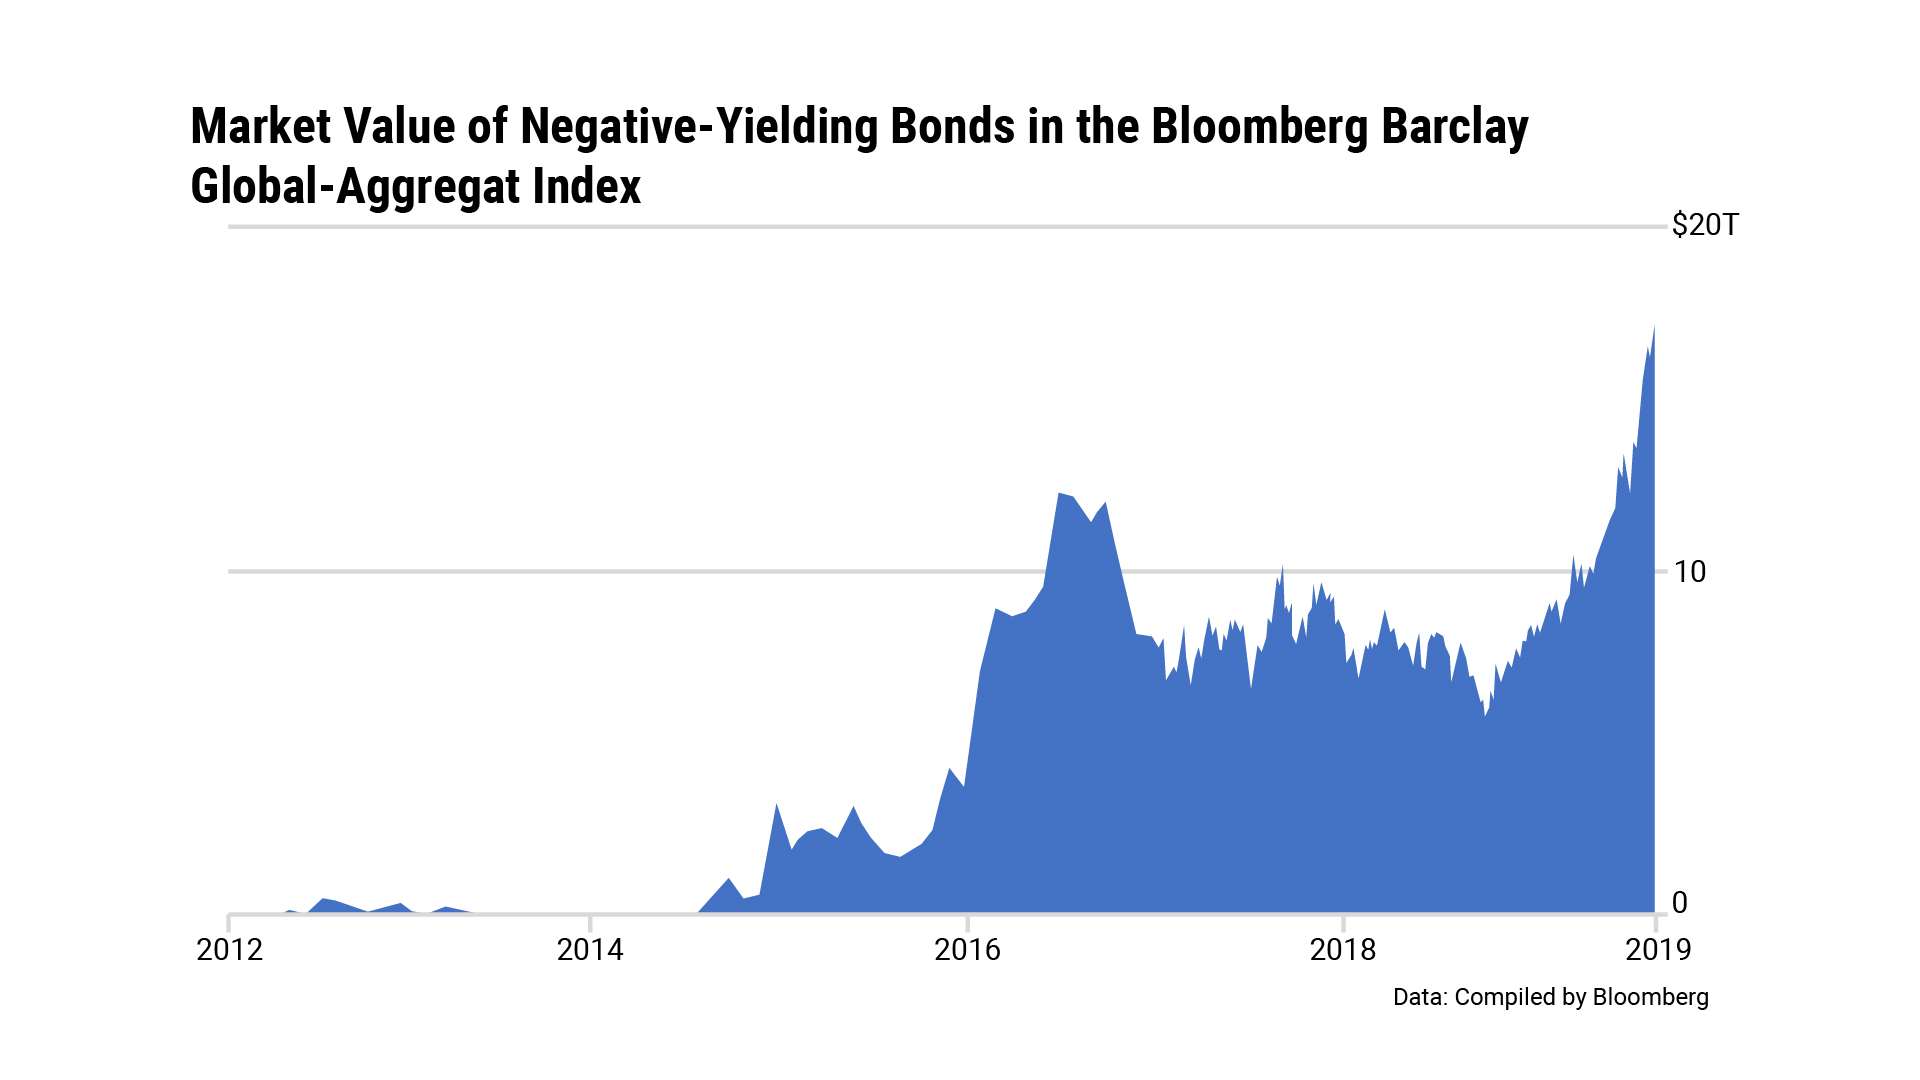 Market Value of Negative-Yielding Bonds in the Bloomberg Barclay Global-Aggregat Index Chart